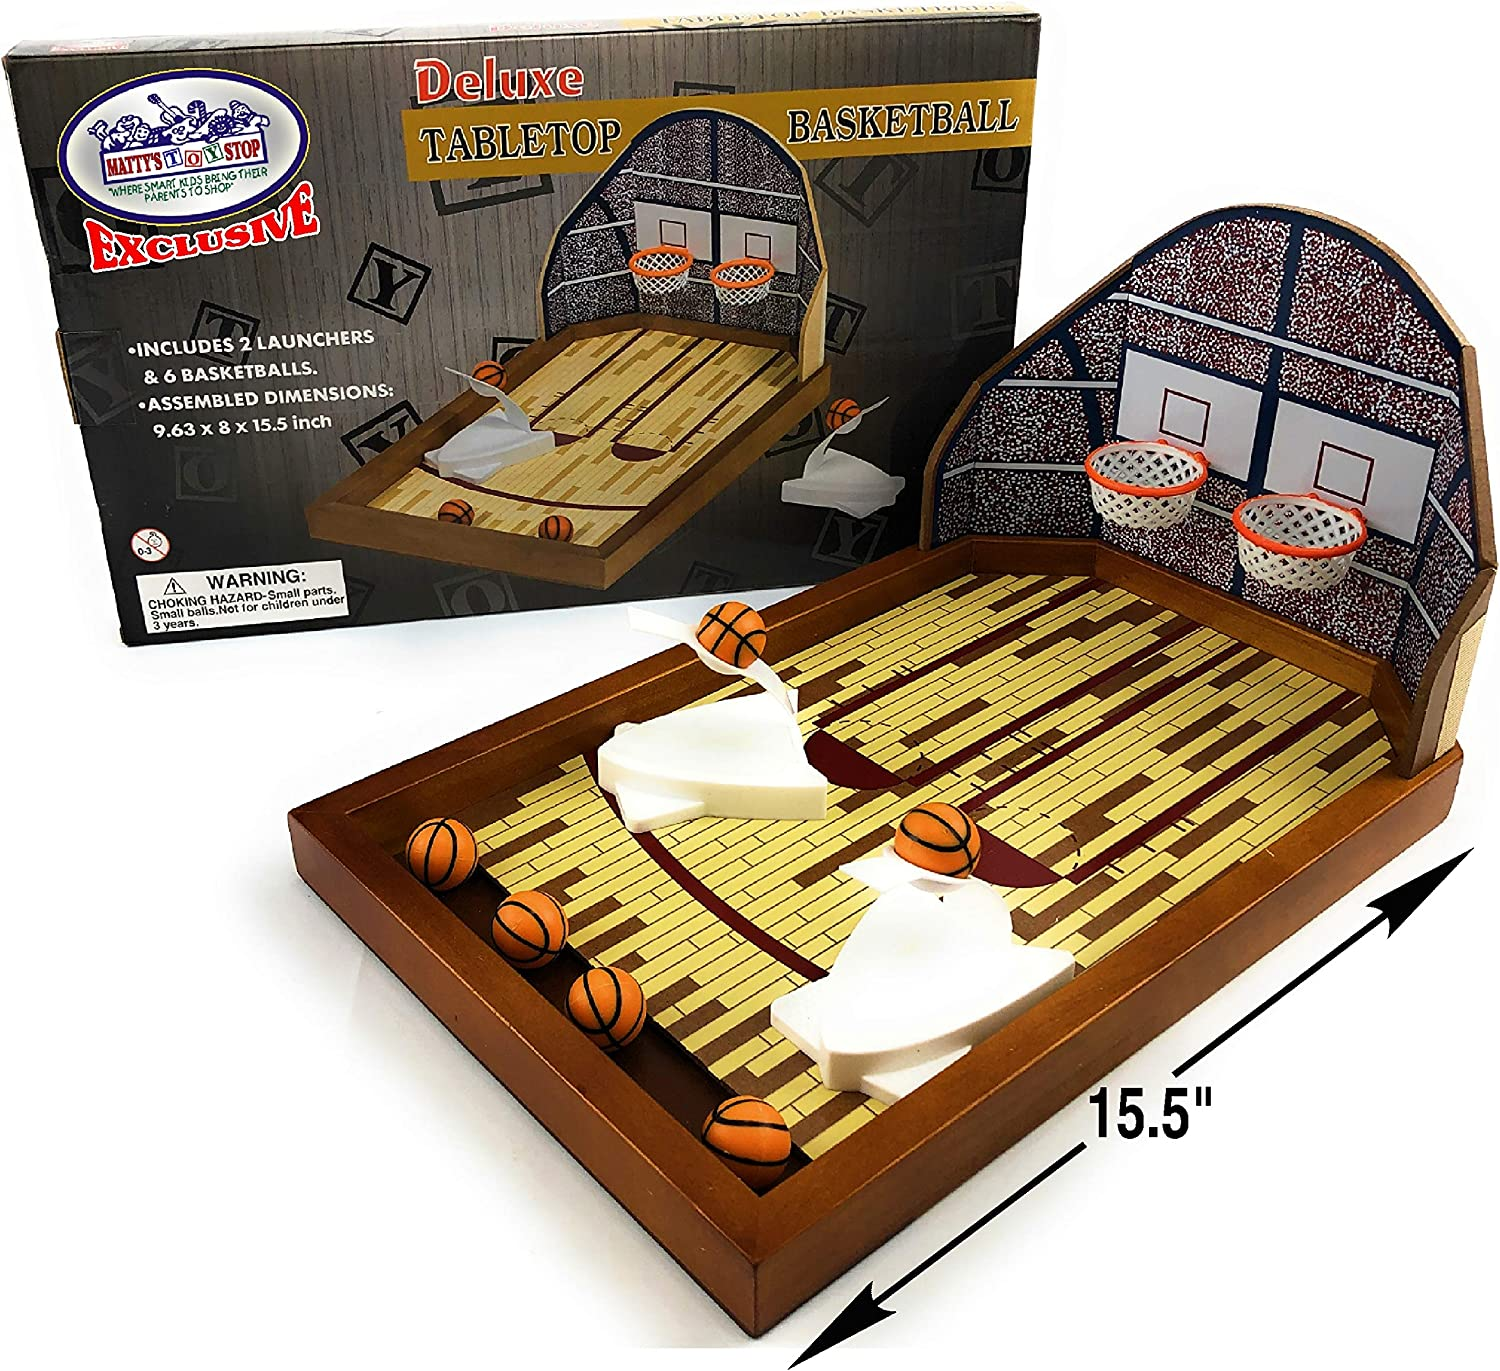 Matty's Toy Stop Deluxe Wooden Mini Tabletop Basketball Game for 2 Players (Includes 2 Launchers & 6 Basketballs)